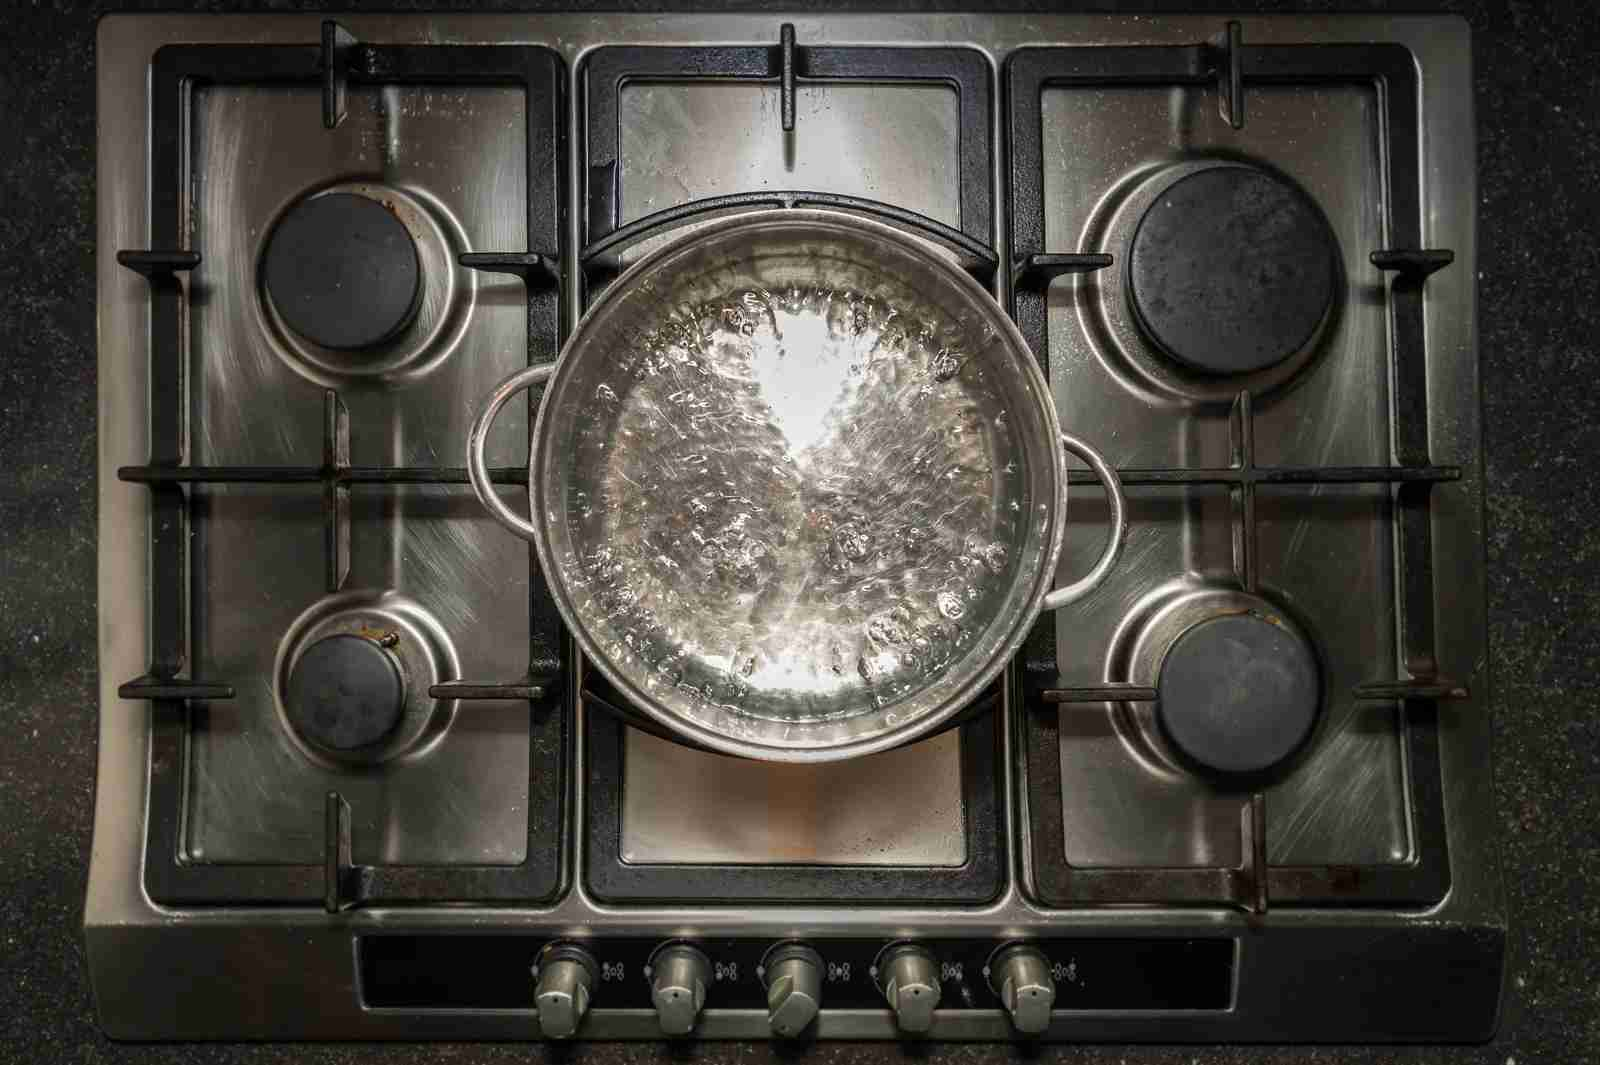 Metal cooking pan with boiling water and on a cooker, stove